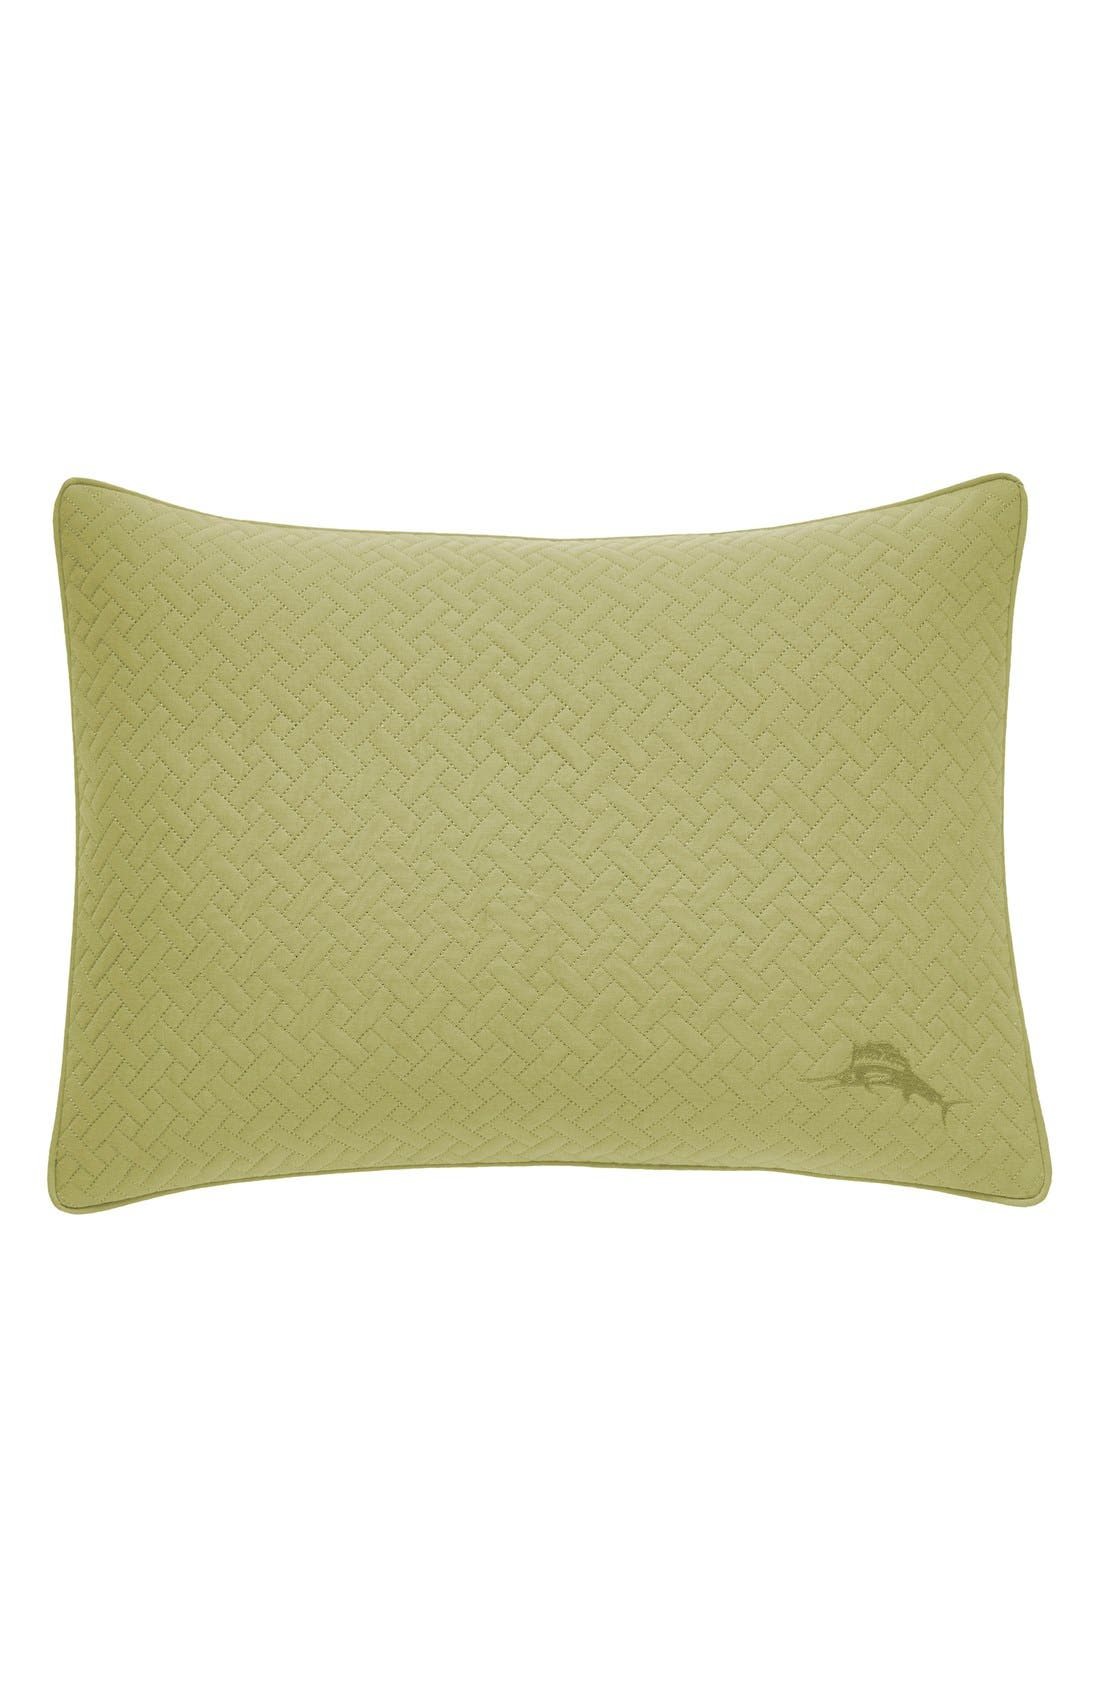 Tommy Bahama 'Kiwi' Pillow